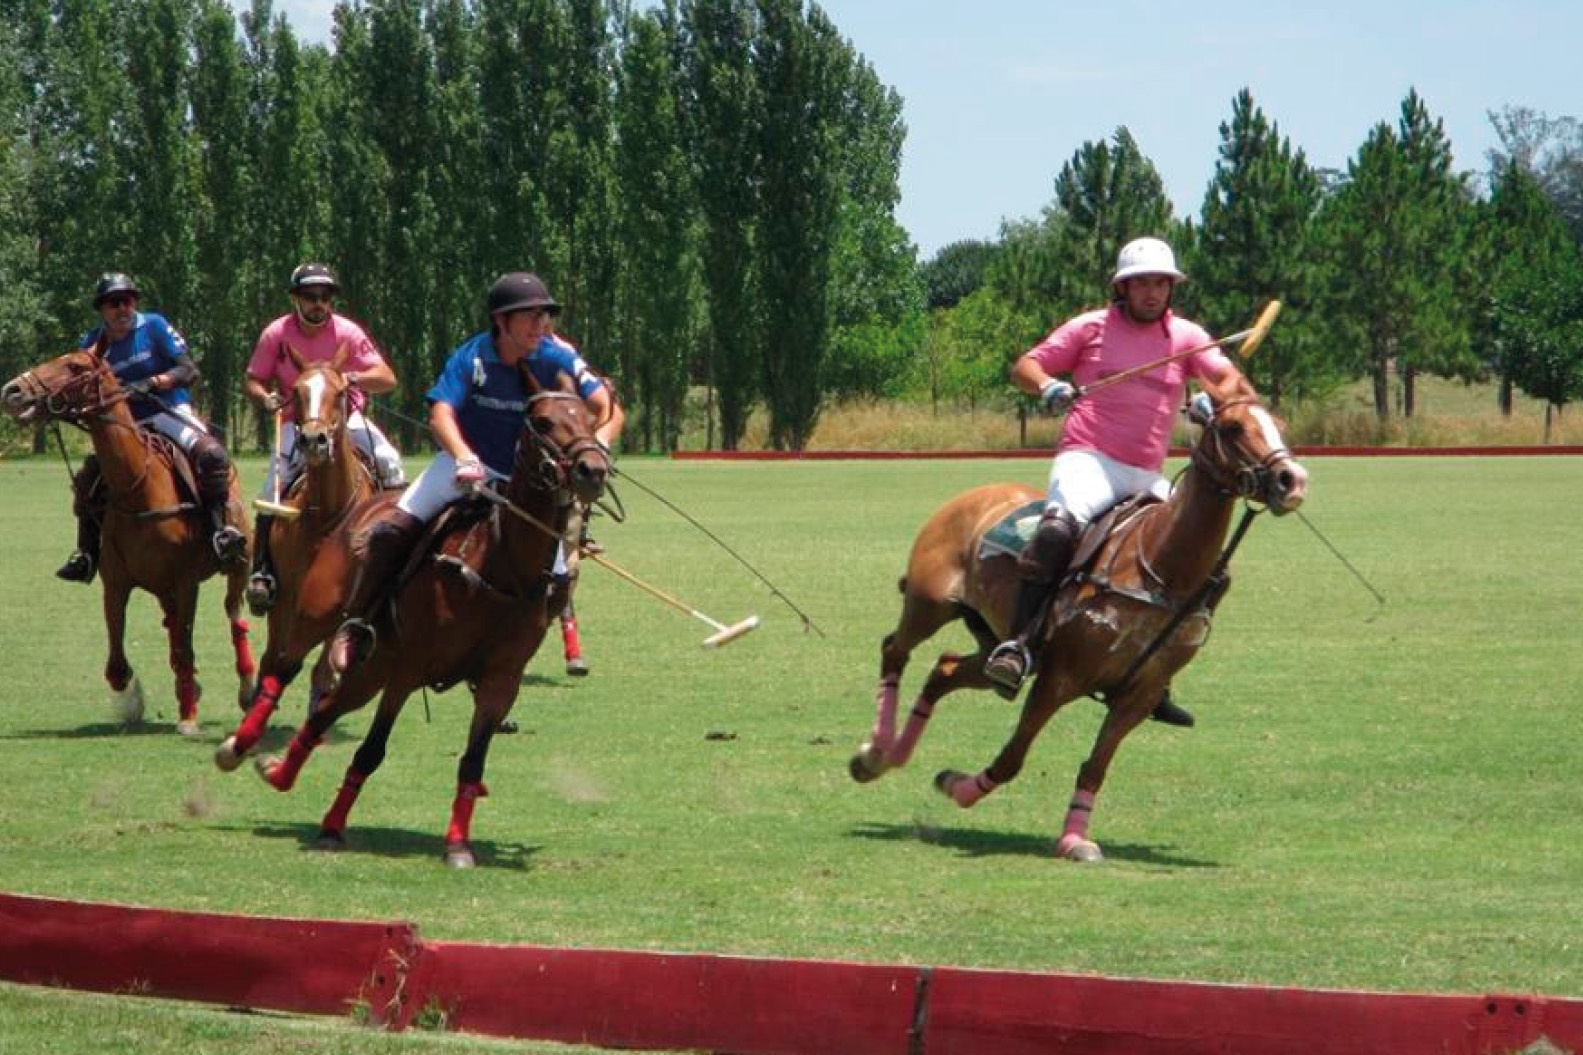 Argentina Polo Holidays – Argentina Polo Day offers a Polo